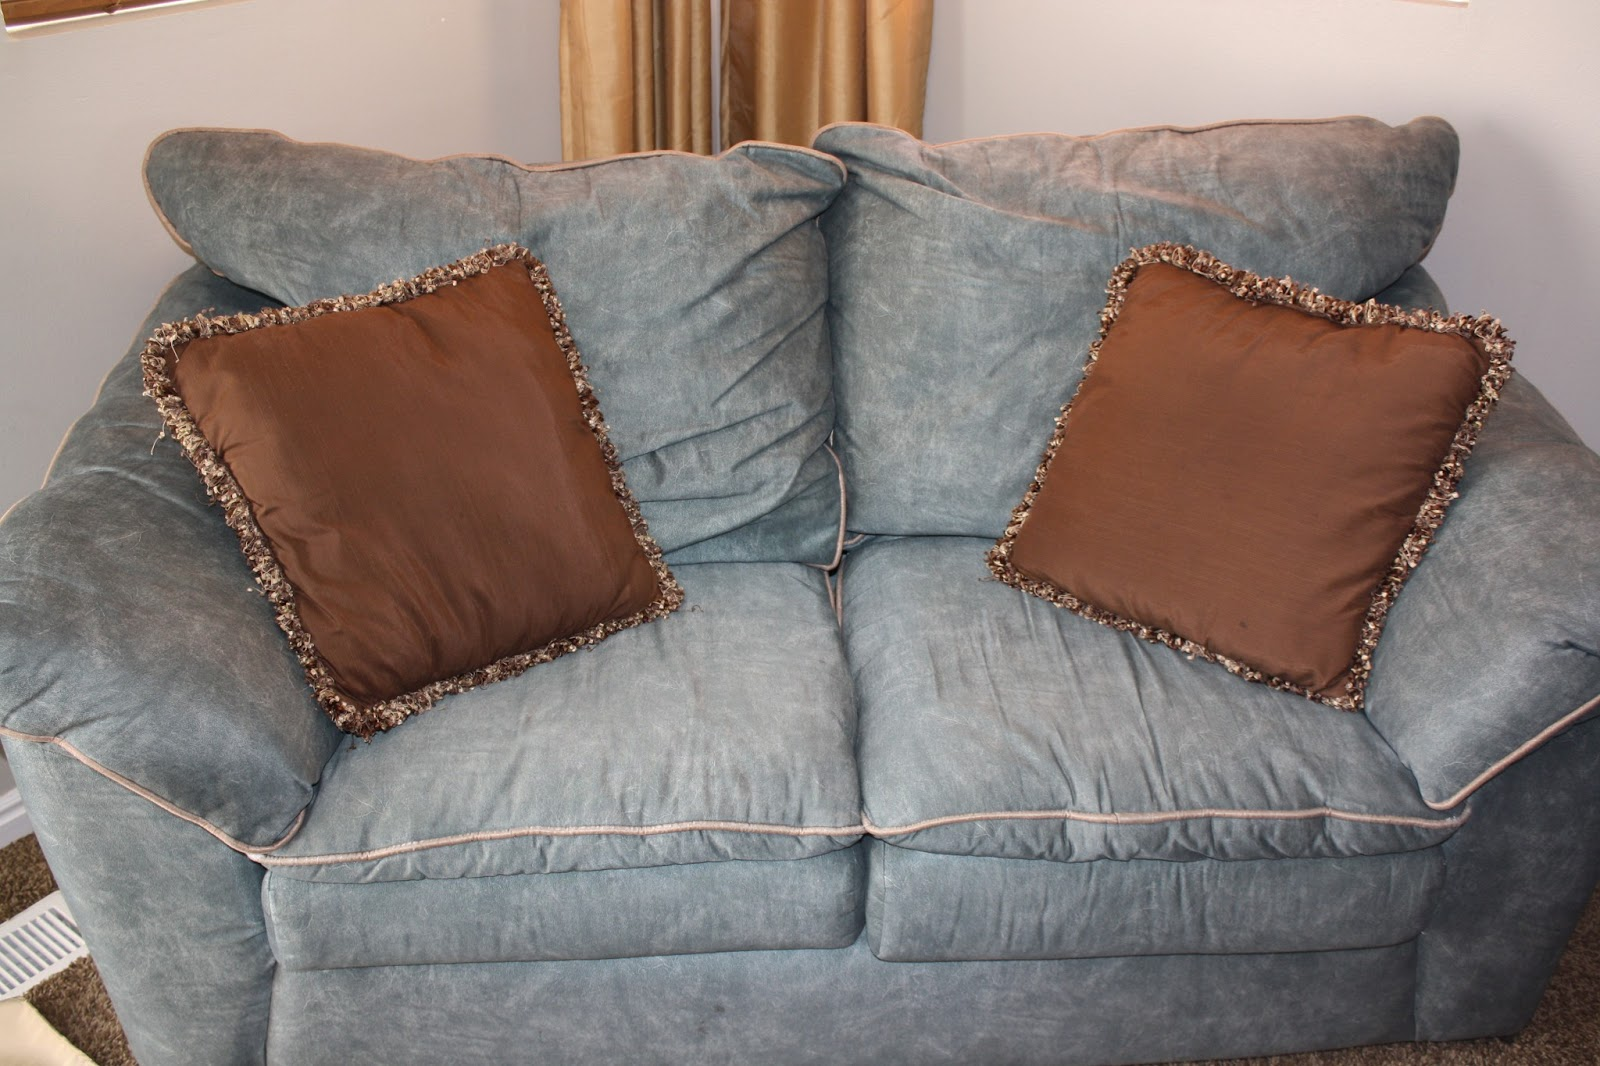 iu0027m not gonna lie my sofa set is kinda ugly itu0027s not horrible so that is why i say itu0027s only uglyish weu0027ve had this for 10 years